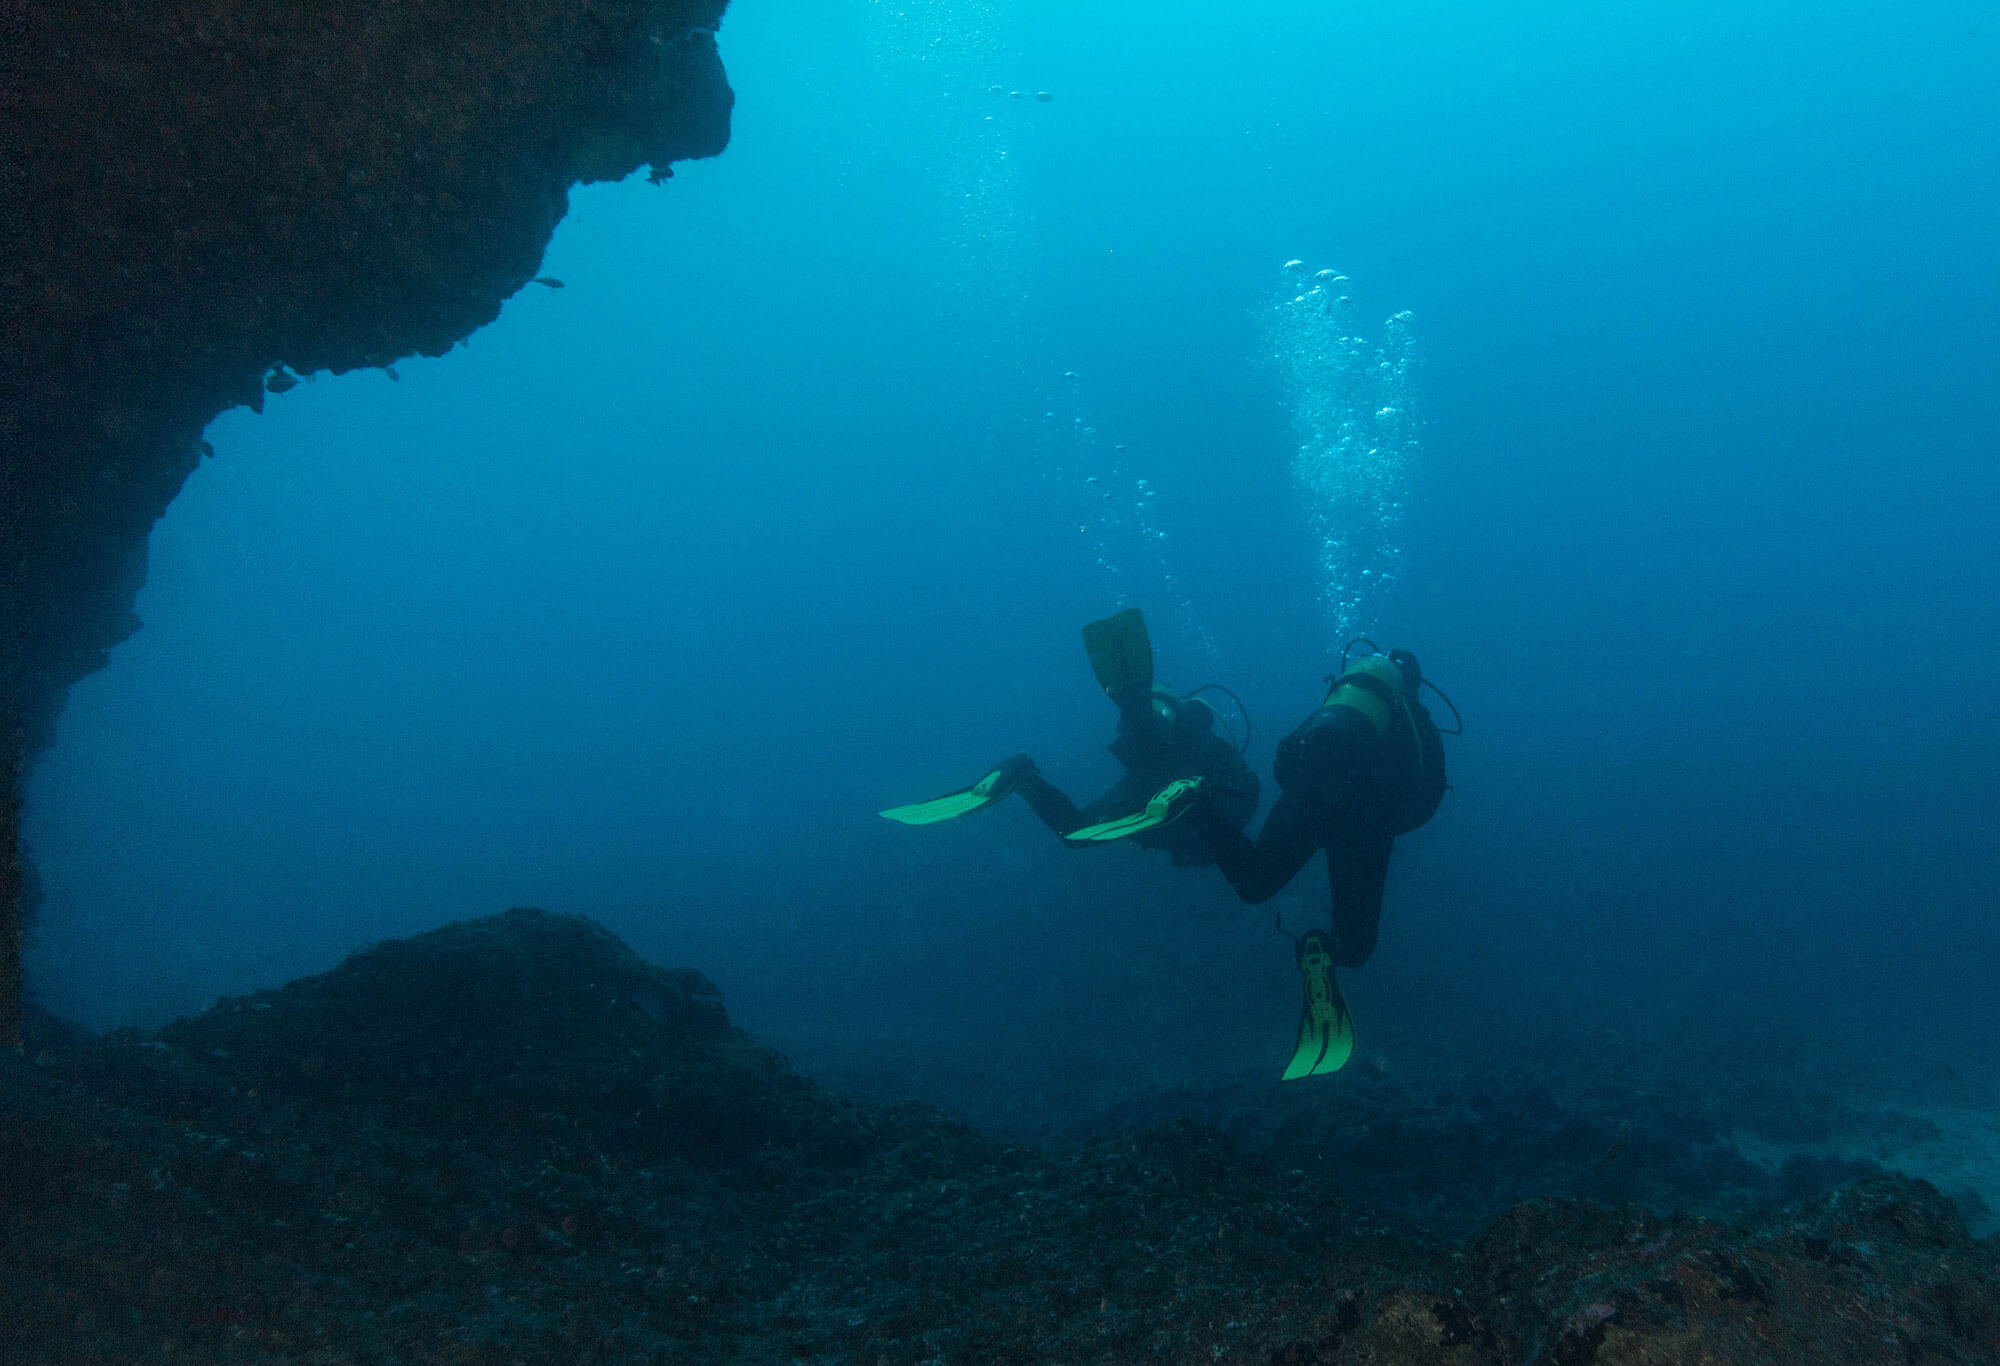 Two Divers at the Arcos de Calora dive site in the Azores